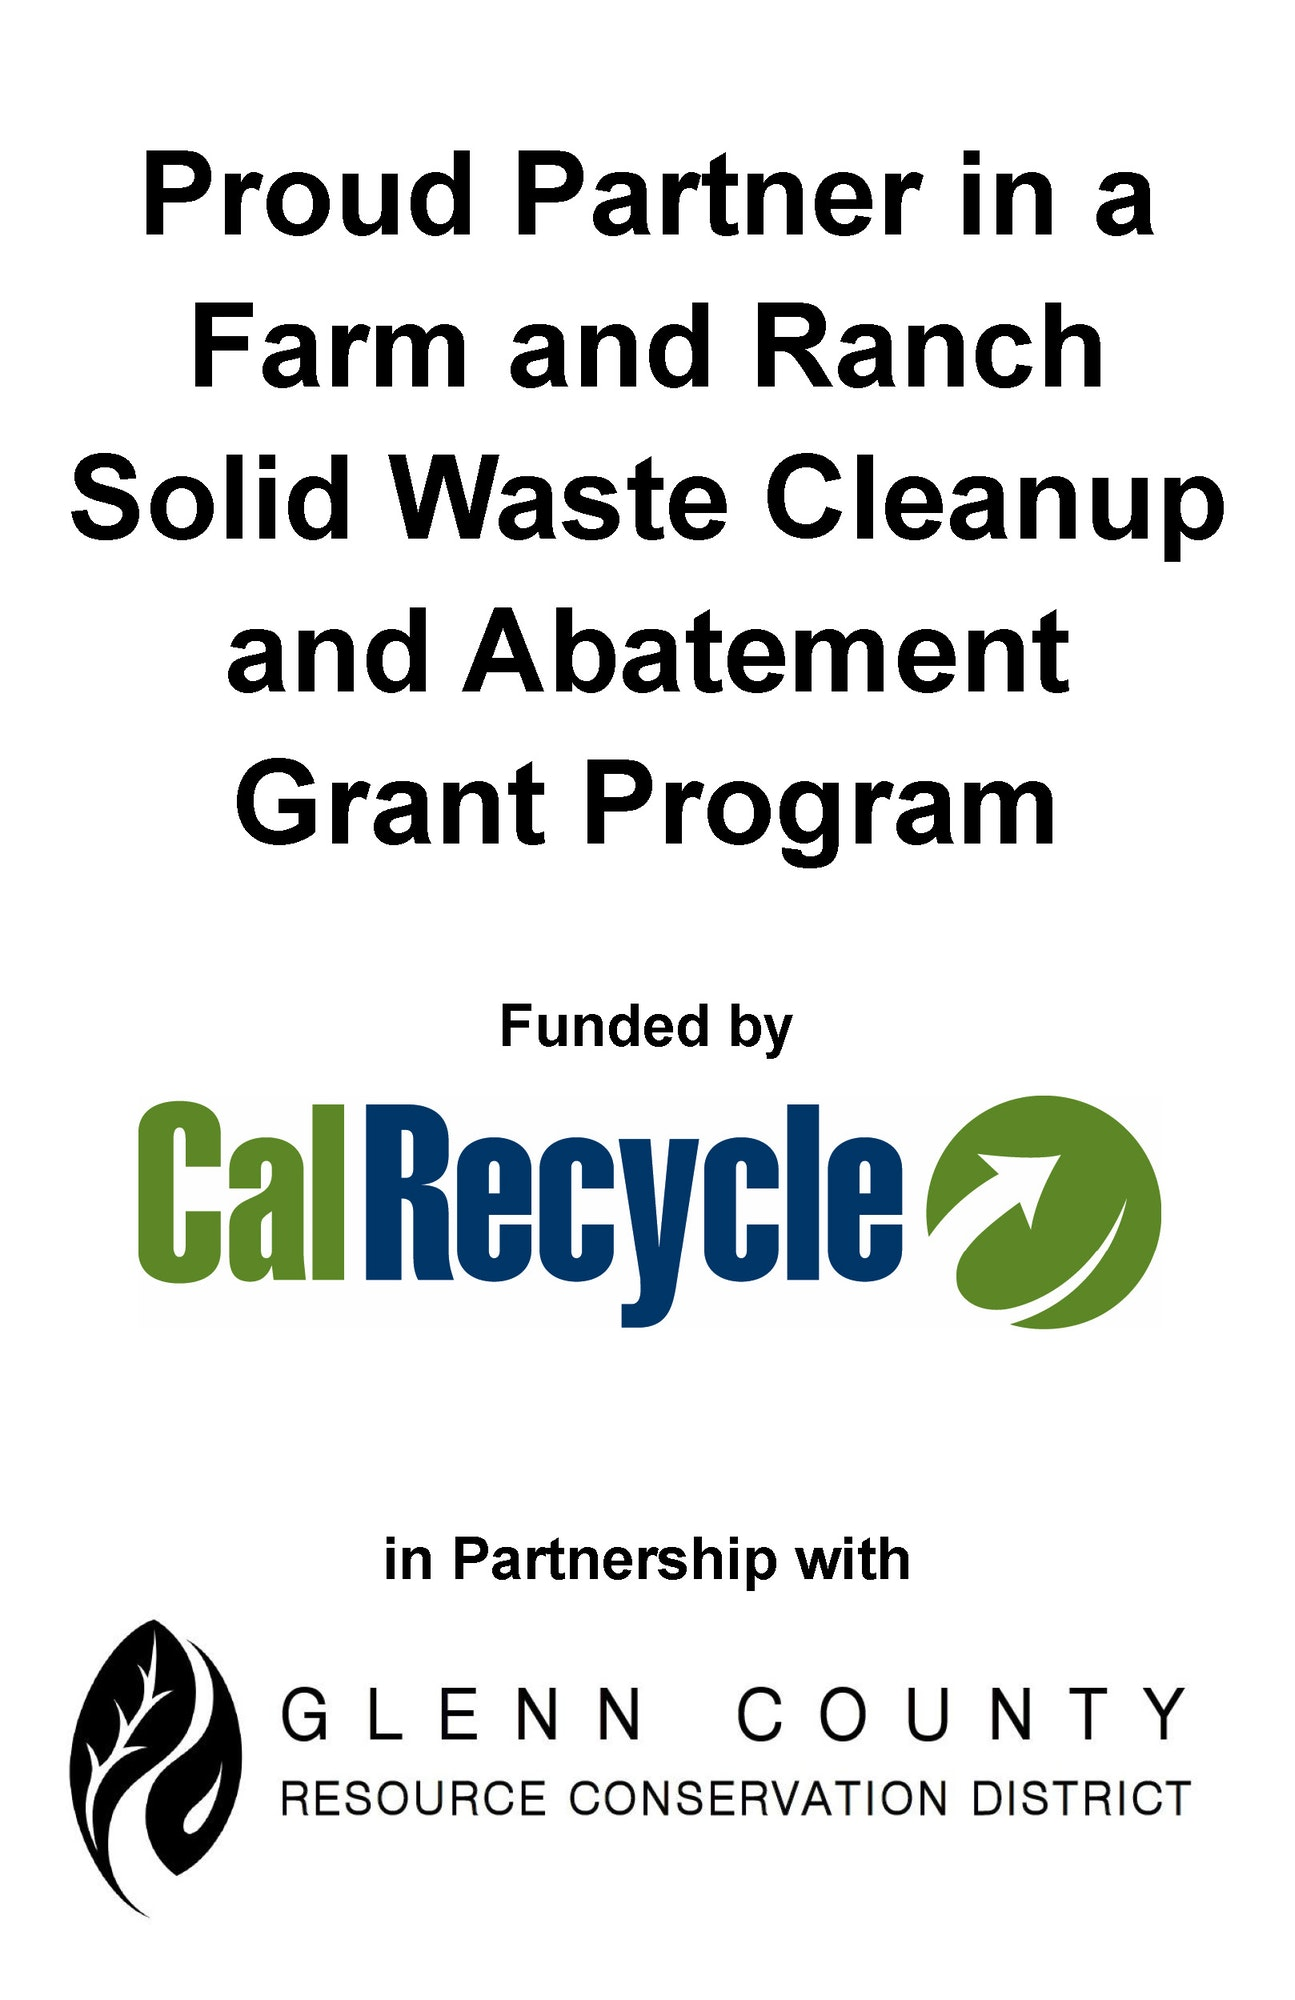 Proud partner sign with Cal Recycle and Glenn County RCD